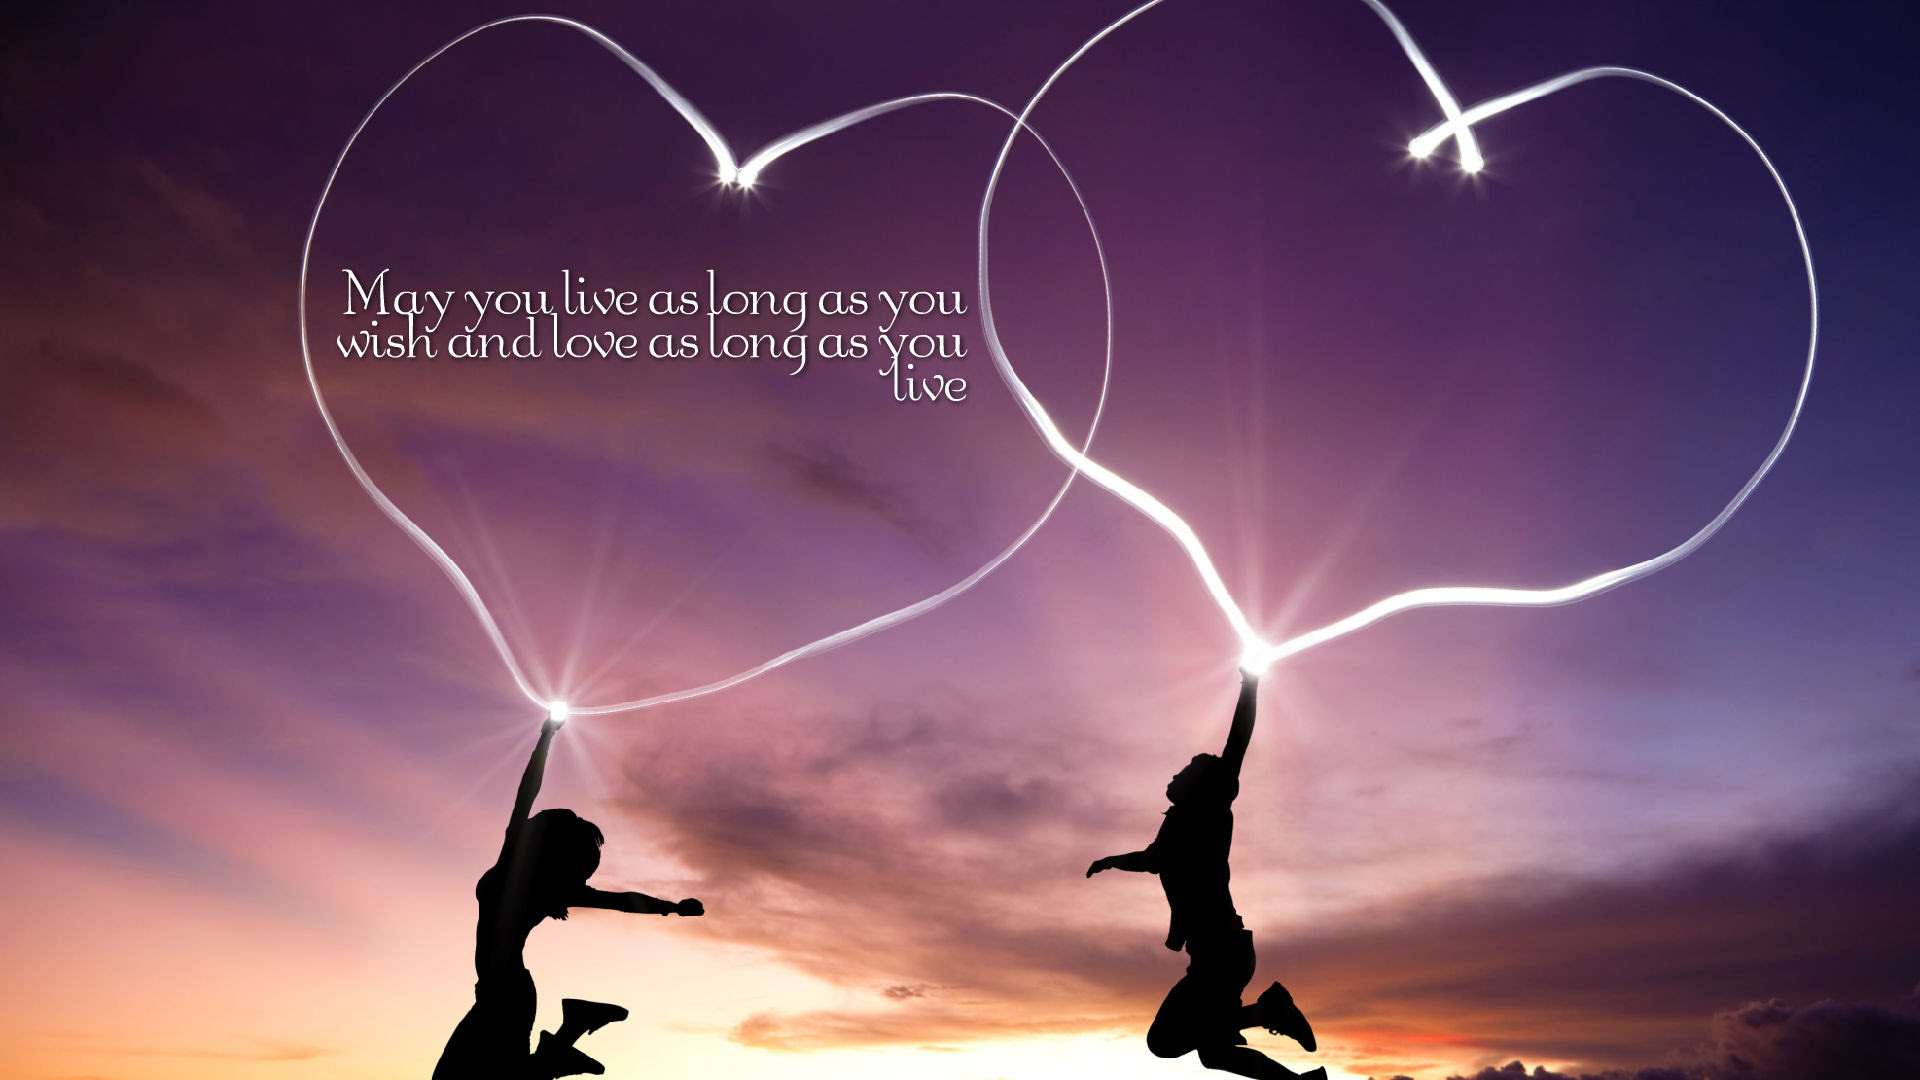 Love Quotes Wallpapers Hd Backgrounds Images Pics Photos Free